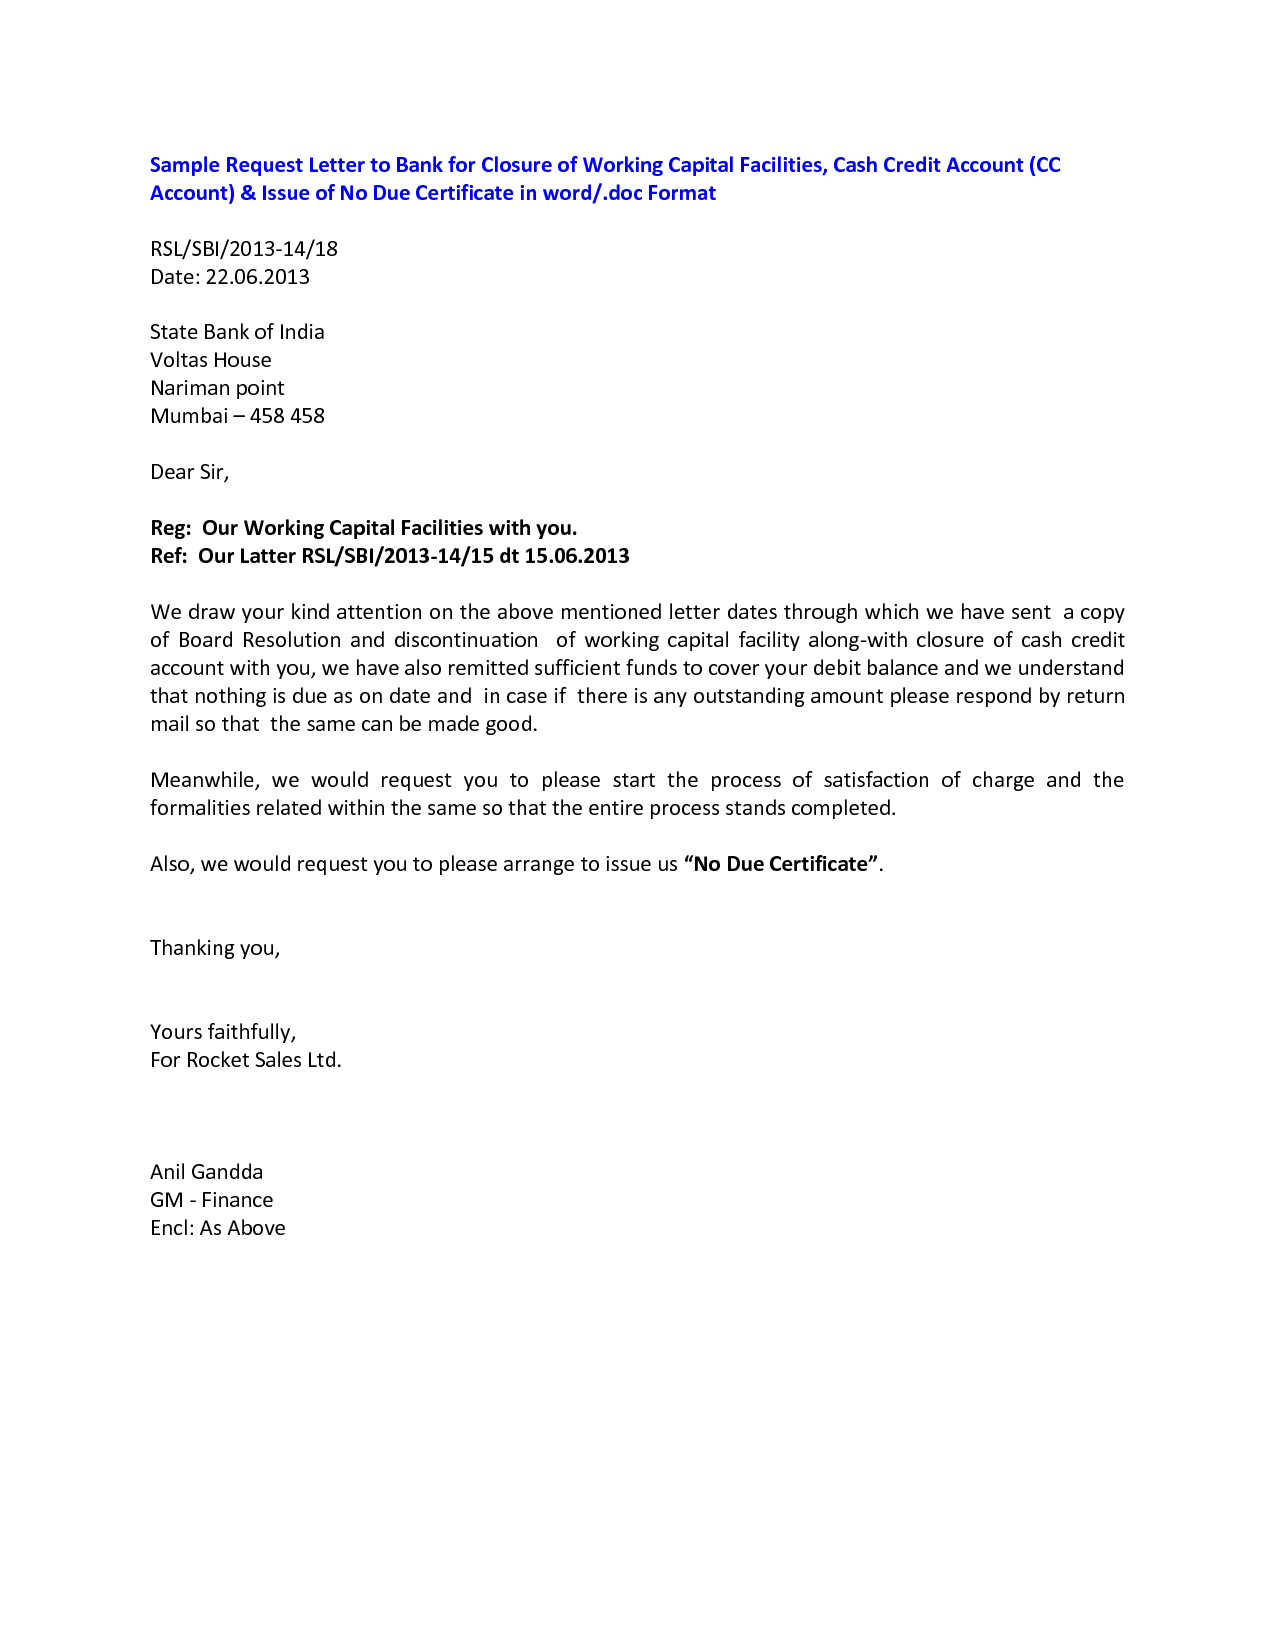 Job application letter for bank manager application letter for the job in bank thecheapjerseys Choice Image